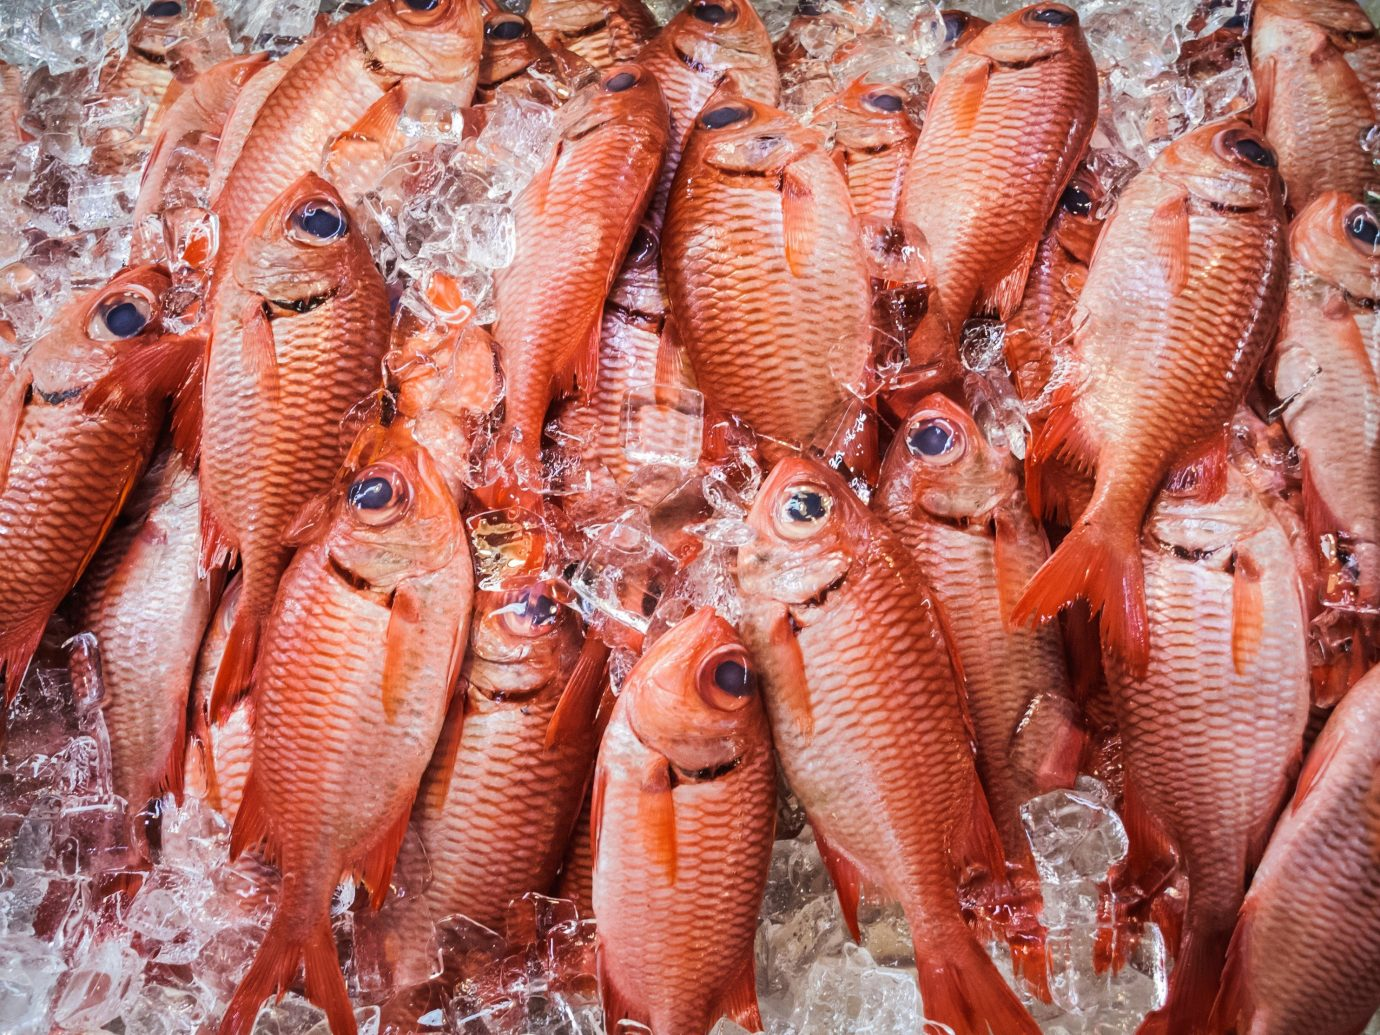 Food + Drink animal marine biology food Seafood invertebrate red snapper animal source foods snapper fish